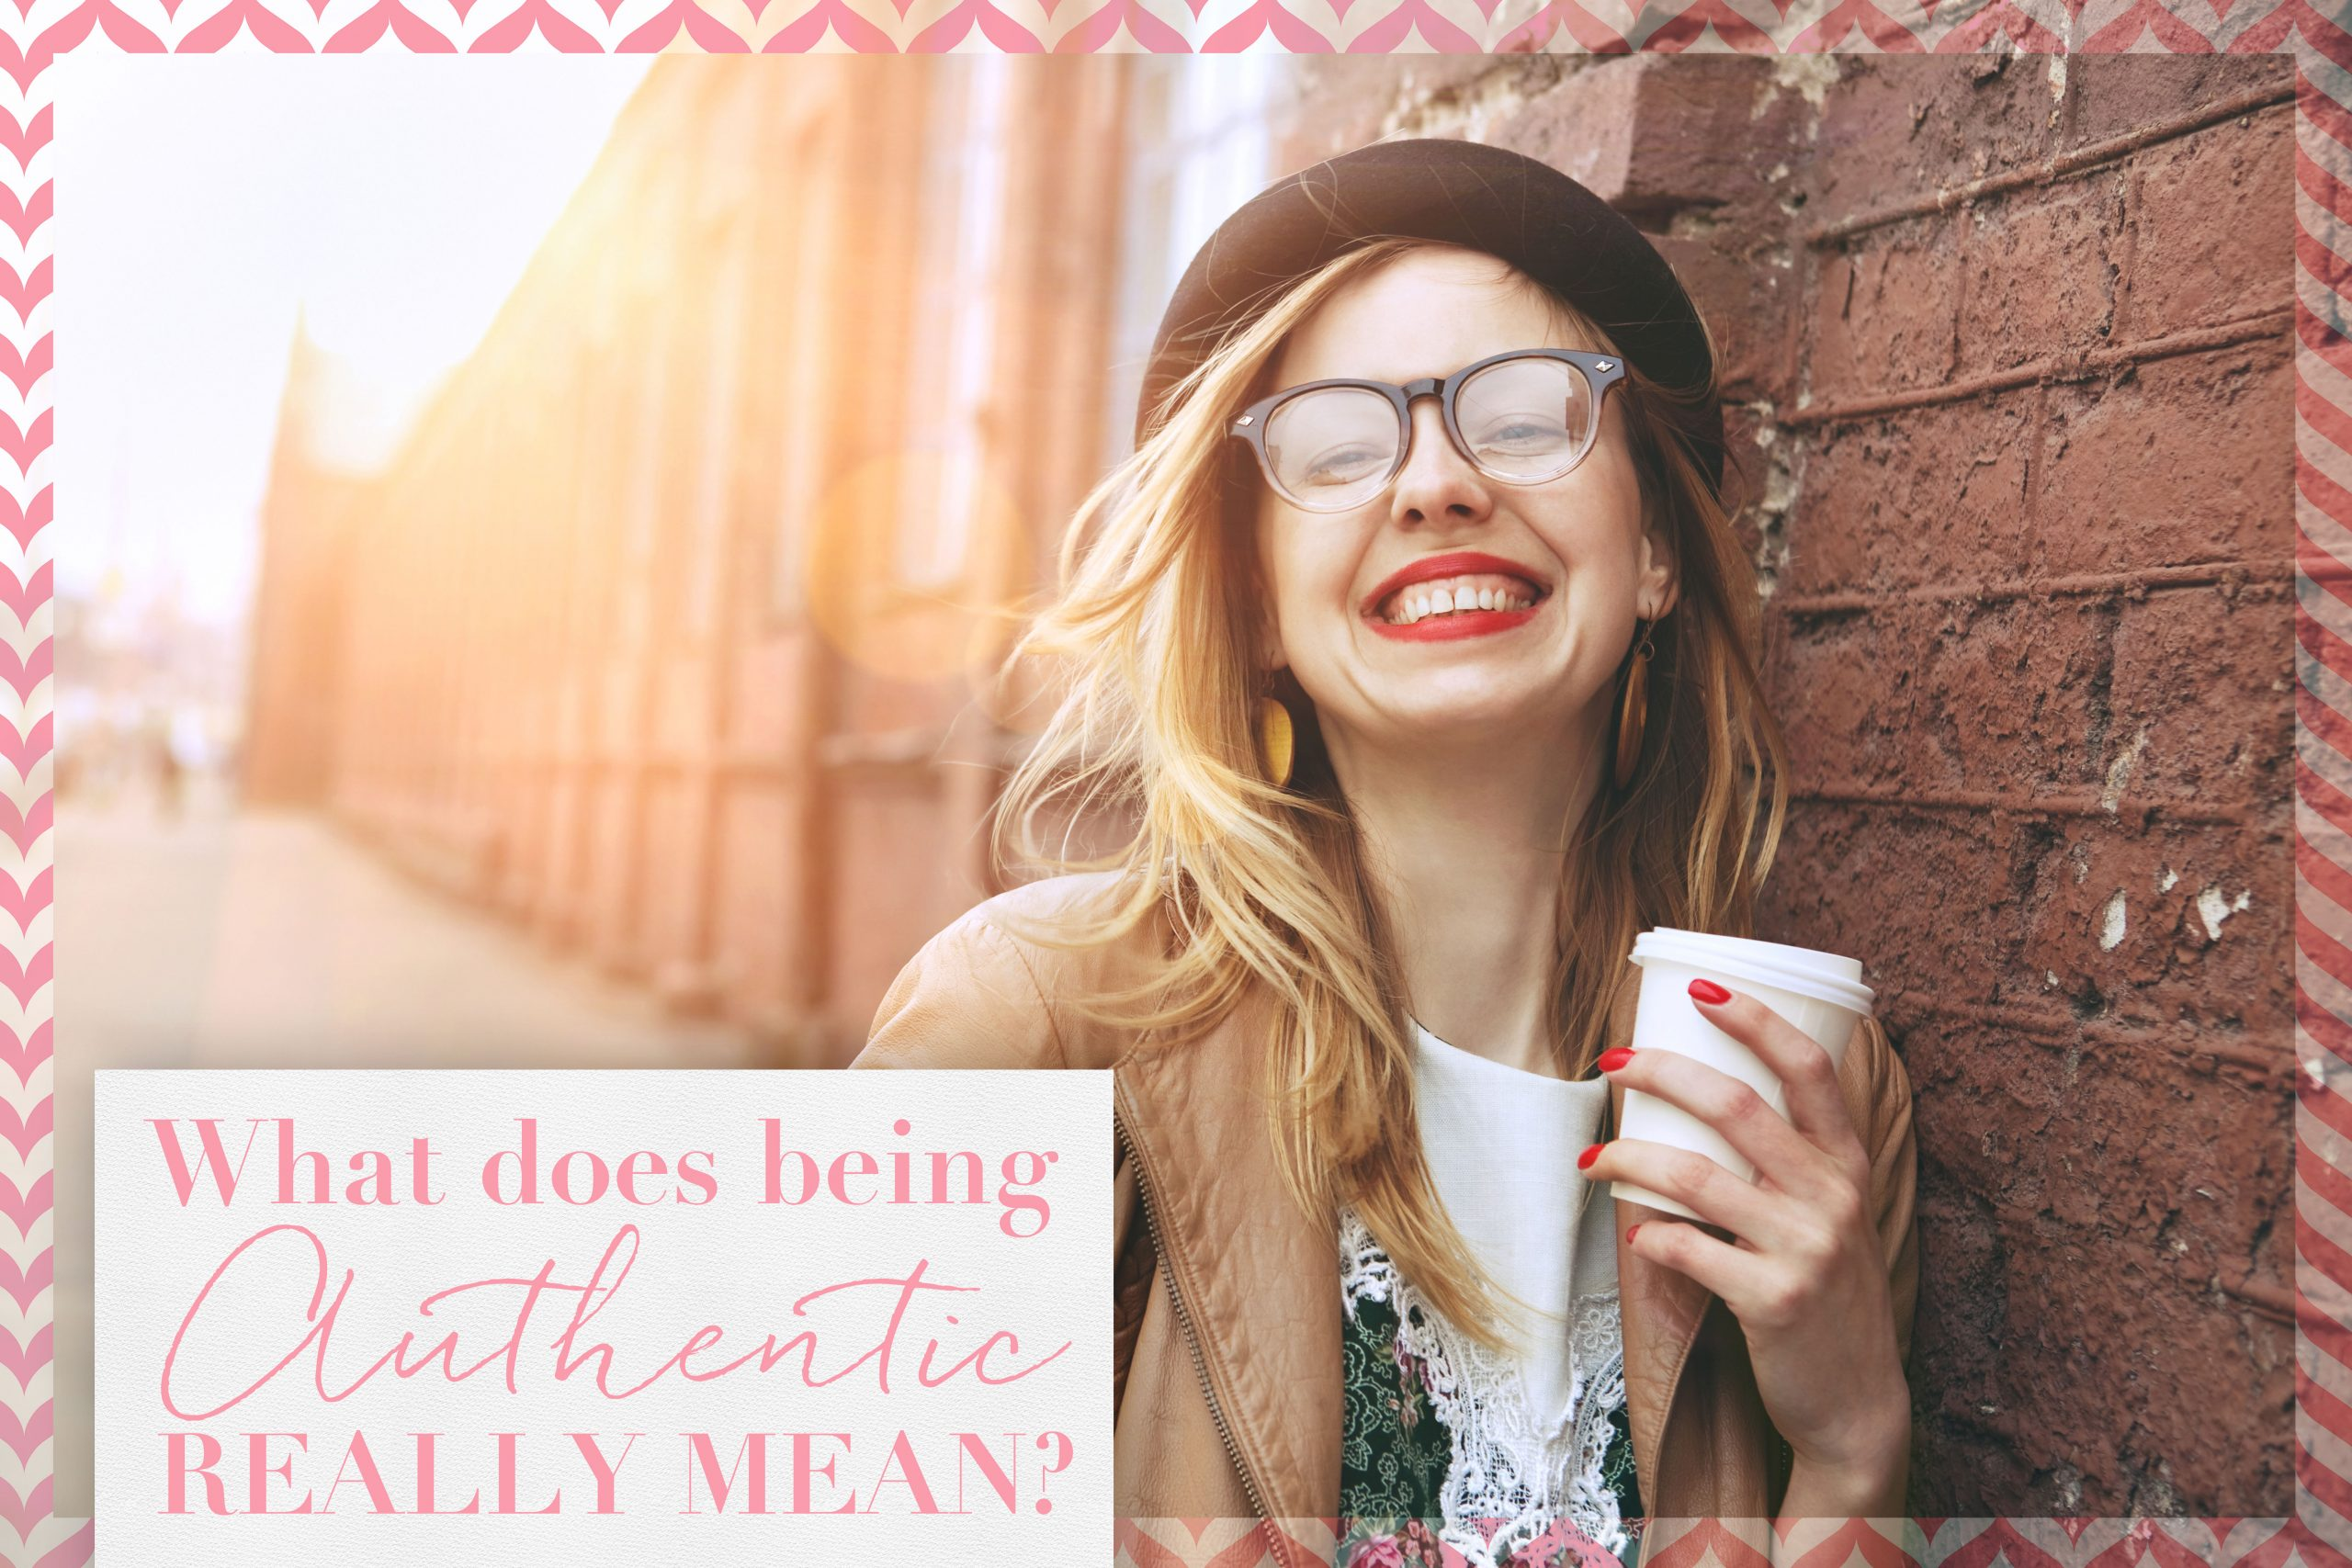 What Does Being 'Authentic' Really Mean?